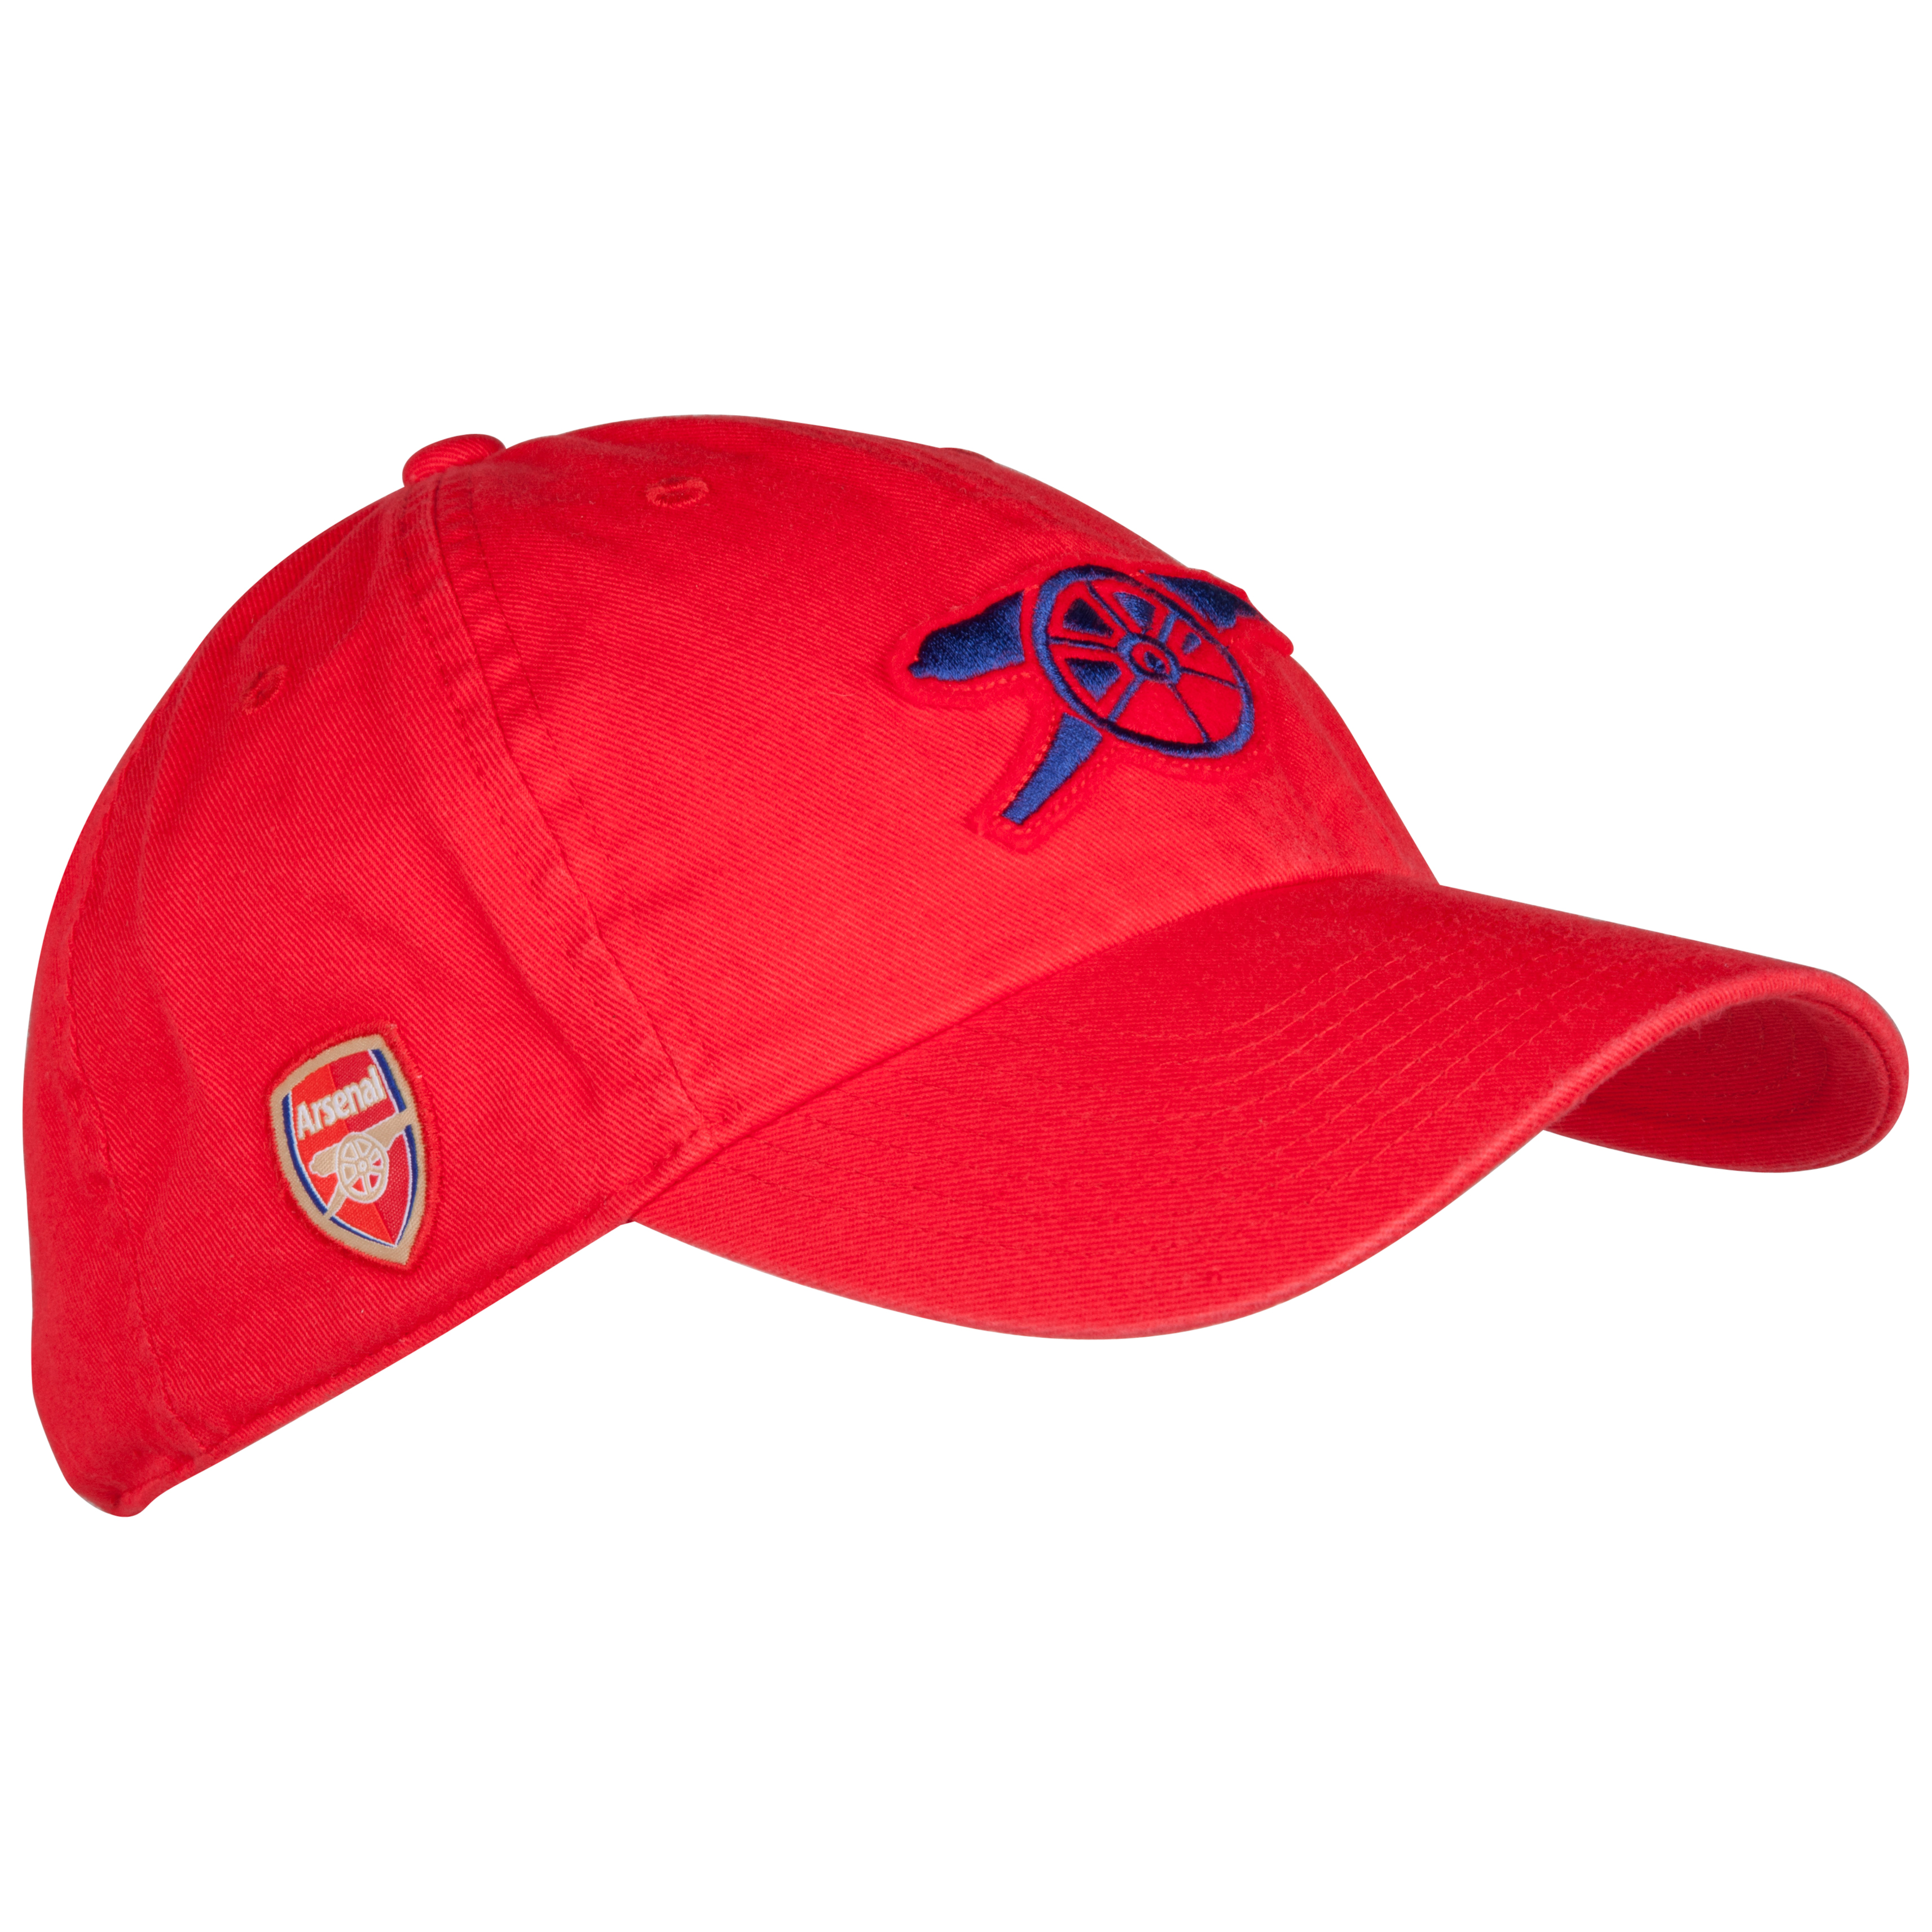 Arsenal Core Cap - University Red/White